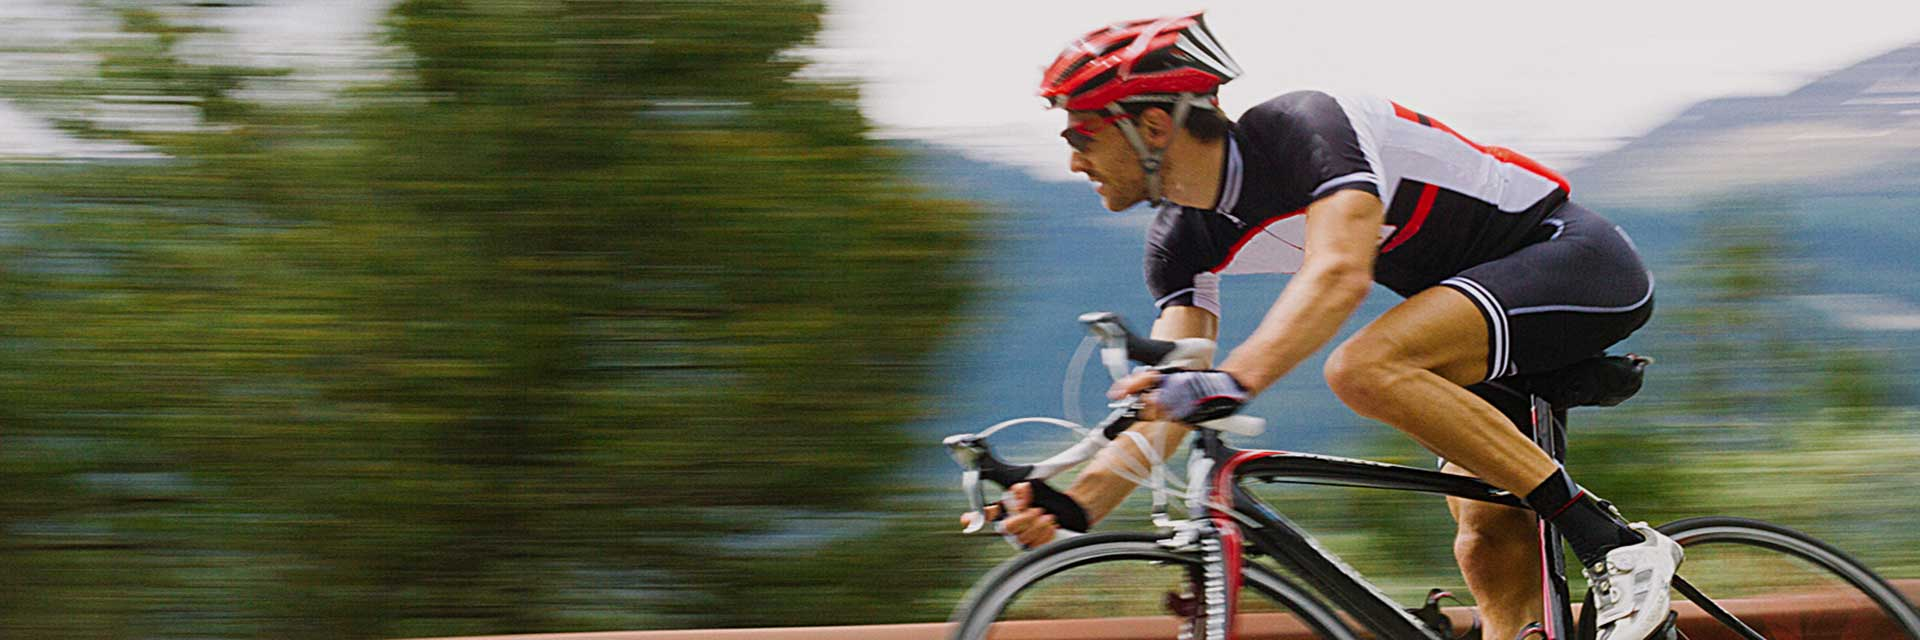 butte-premier-physical-therapy-cyclist-1920×640-1